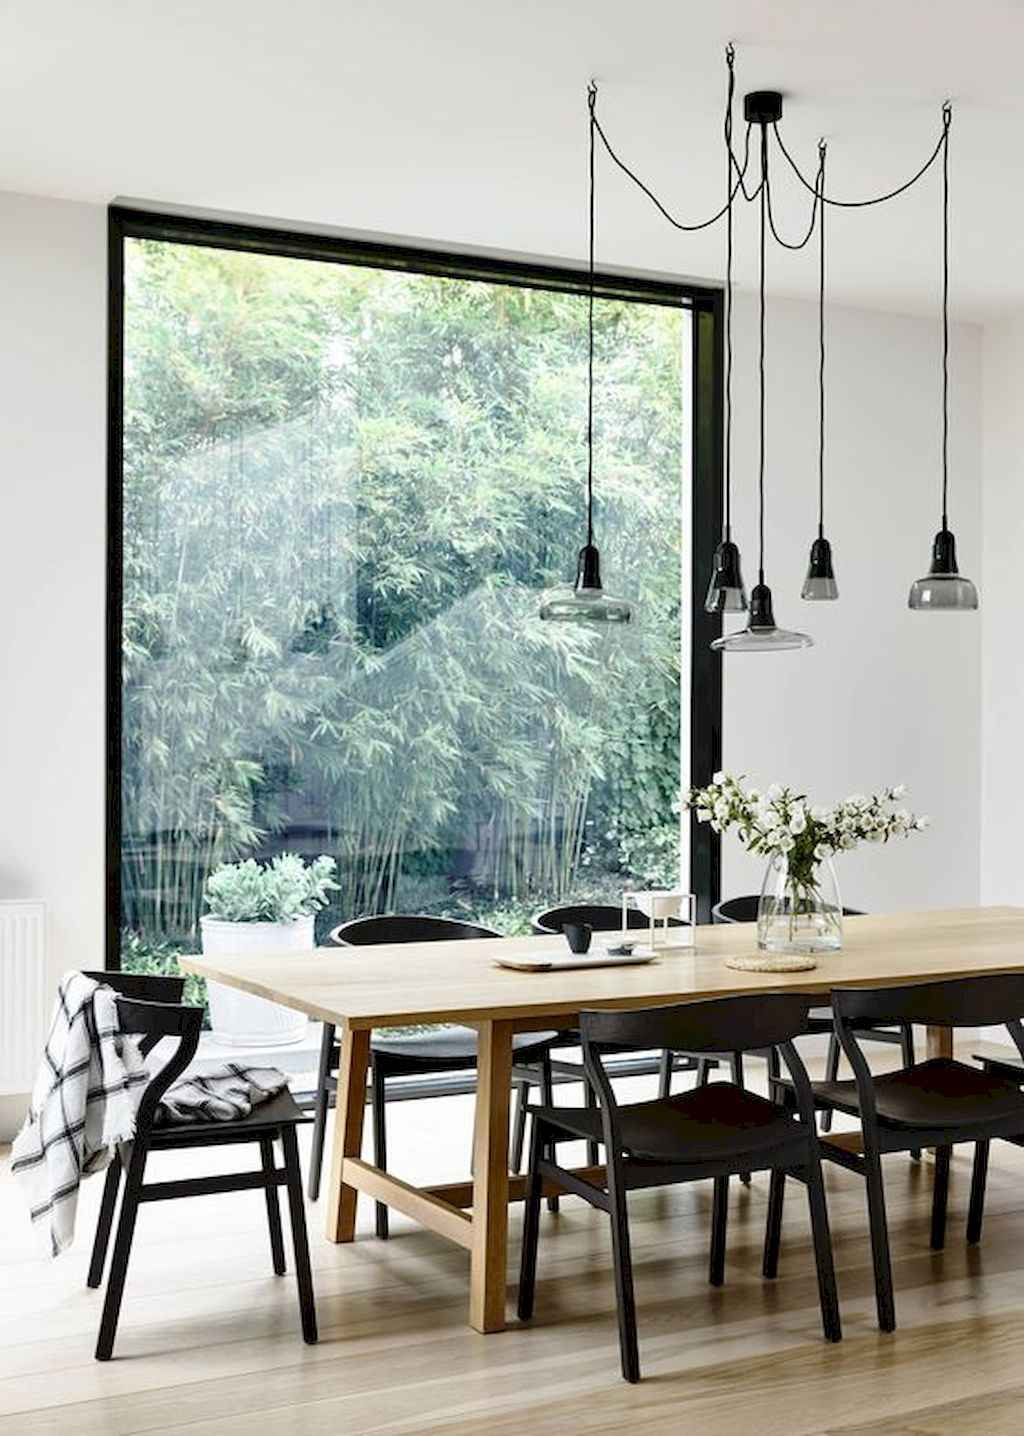 Awesome minimalist dining room decorating ideas (4)